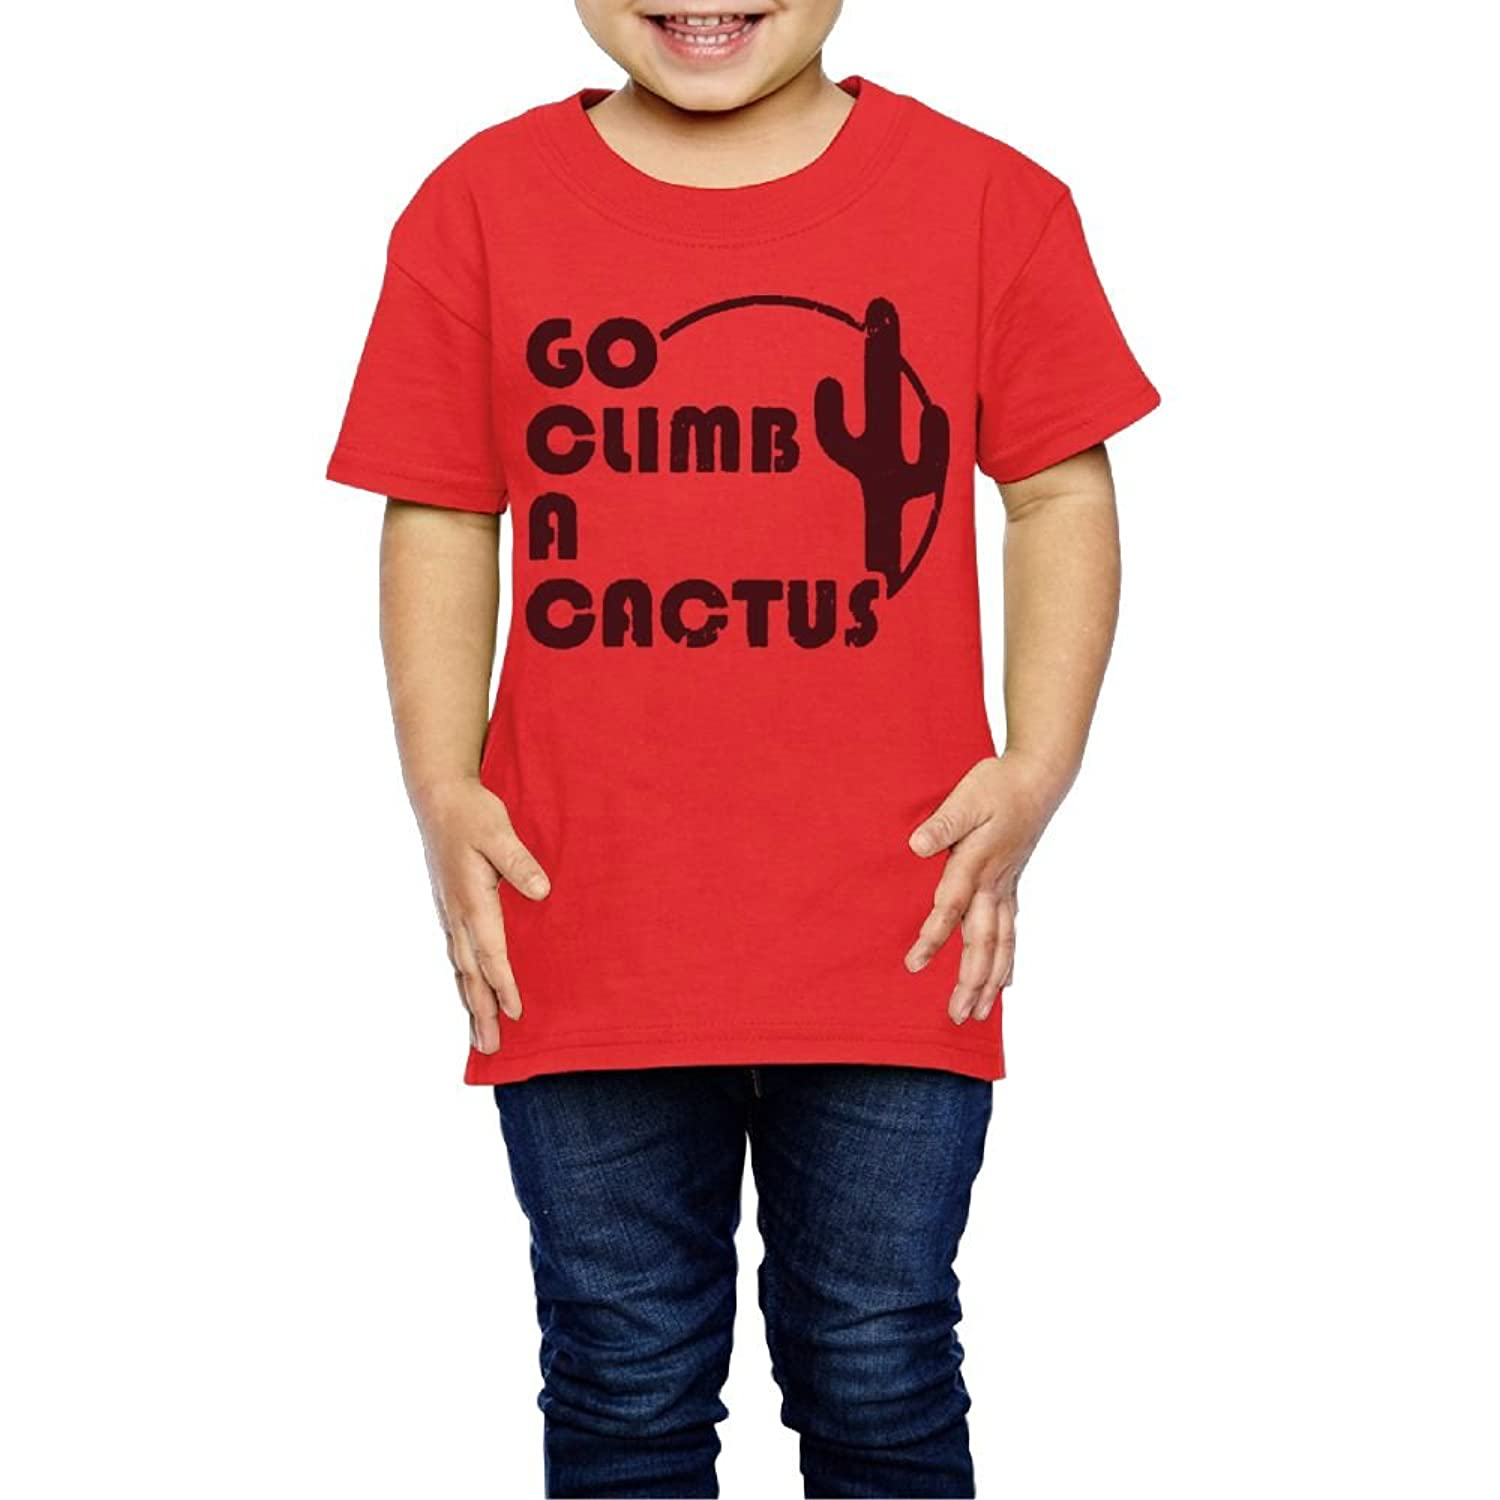 Tghhujffcbjj Boys Go Climb A Cactus - Funny Retro Vintage T Shirts Perfect Gift To Kids Or Parents Red 4 Toddler supplies